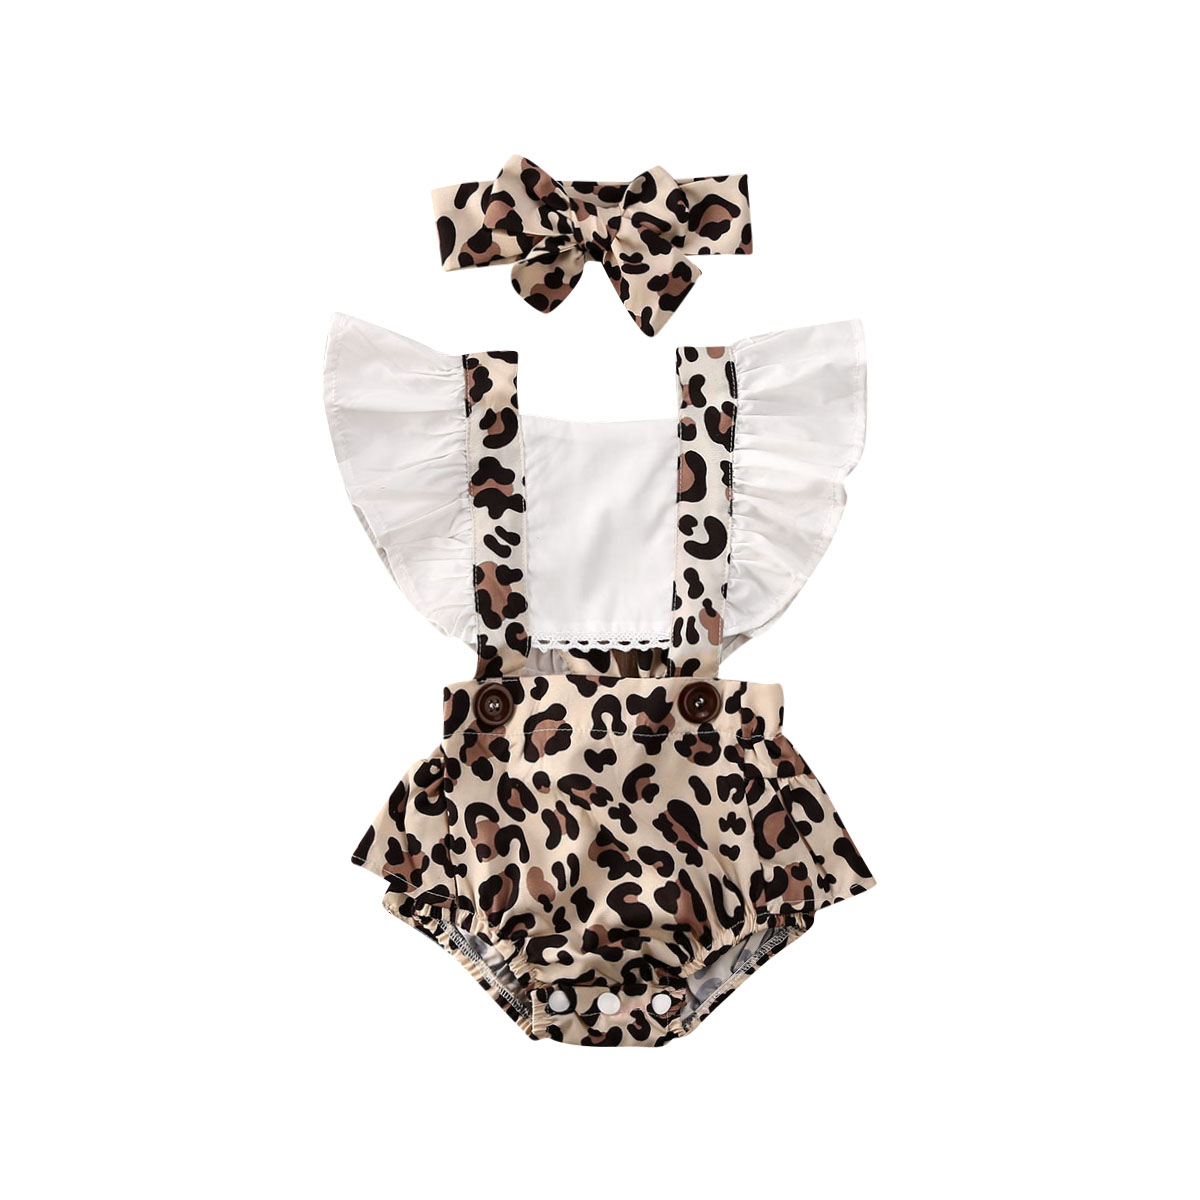 2PCS Infant Baby Girl Leopard Romper Jumpsuit Clothes Outfits Summer 0-24M(China)